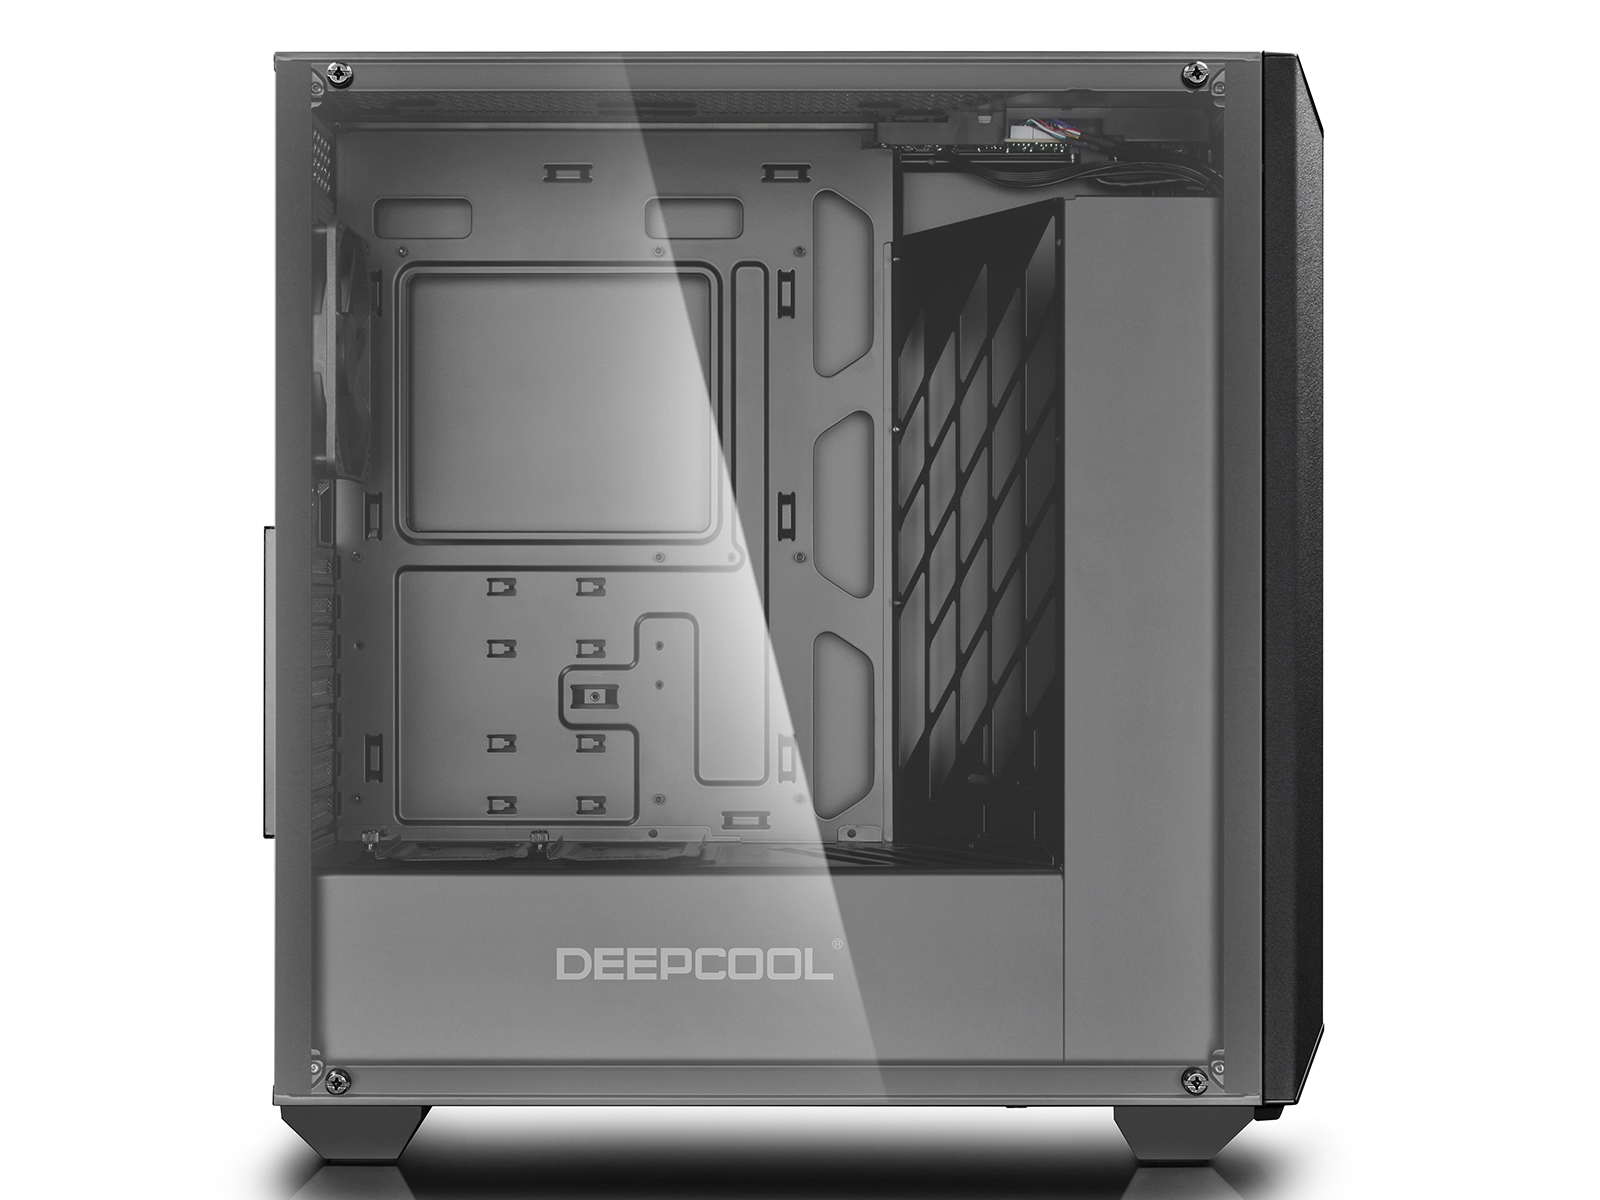 Deepcool Earlkase RGB Case w/ Expandable RGB Lighting image